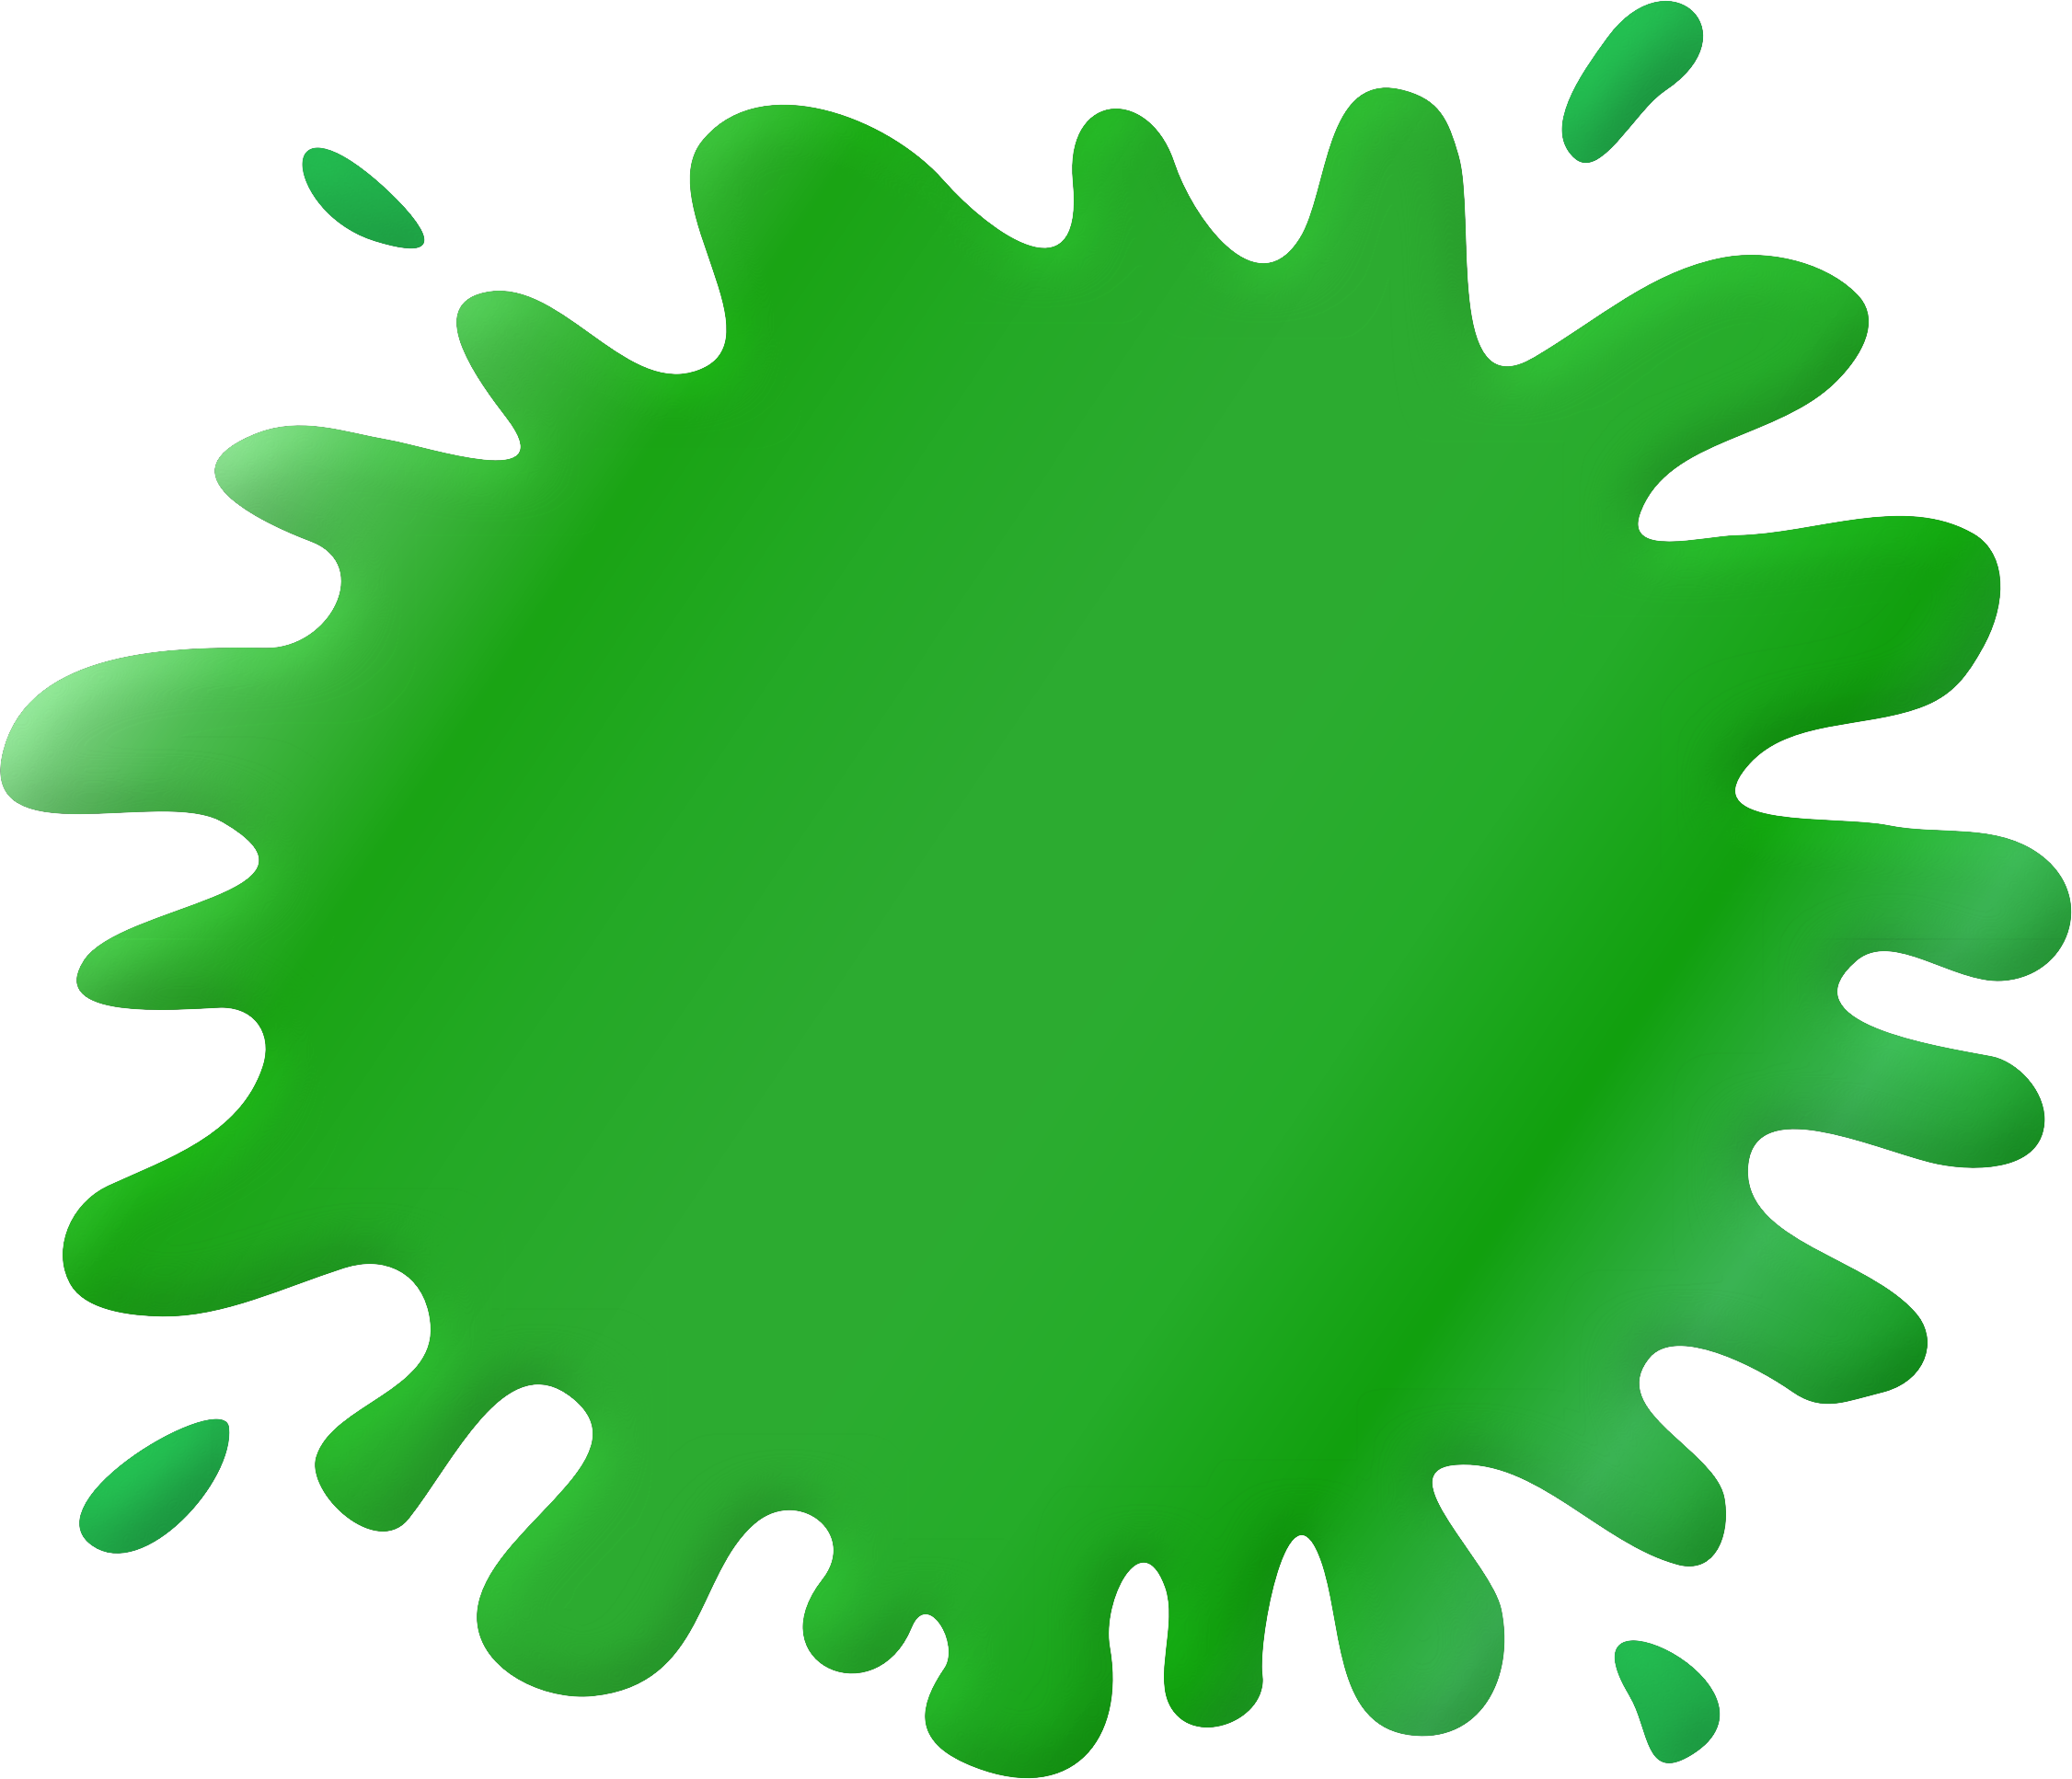 Green Slime Splat Png - Slime clipart neon green, Slime neon green Transparent FREE for ...